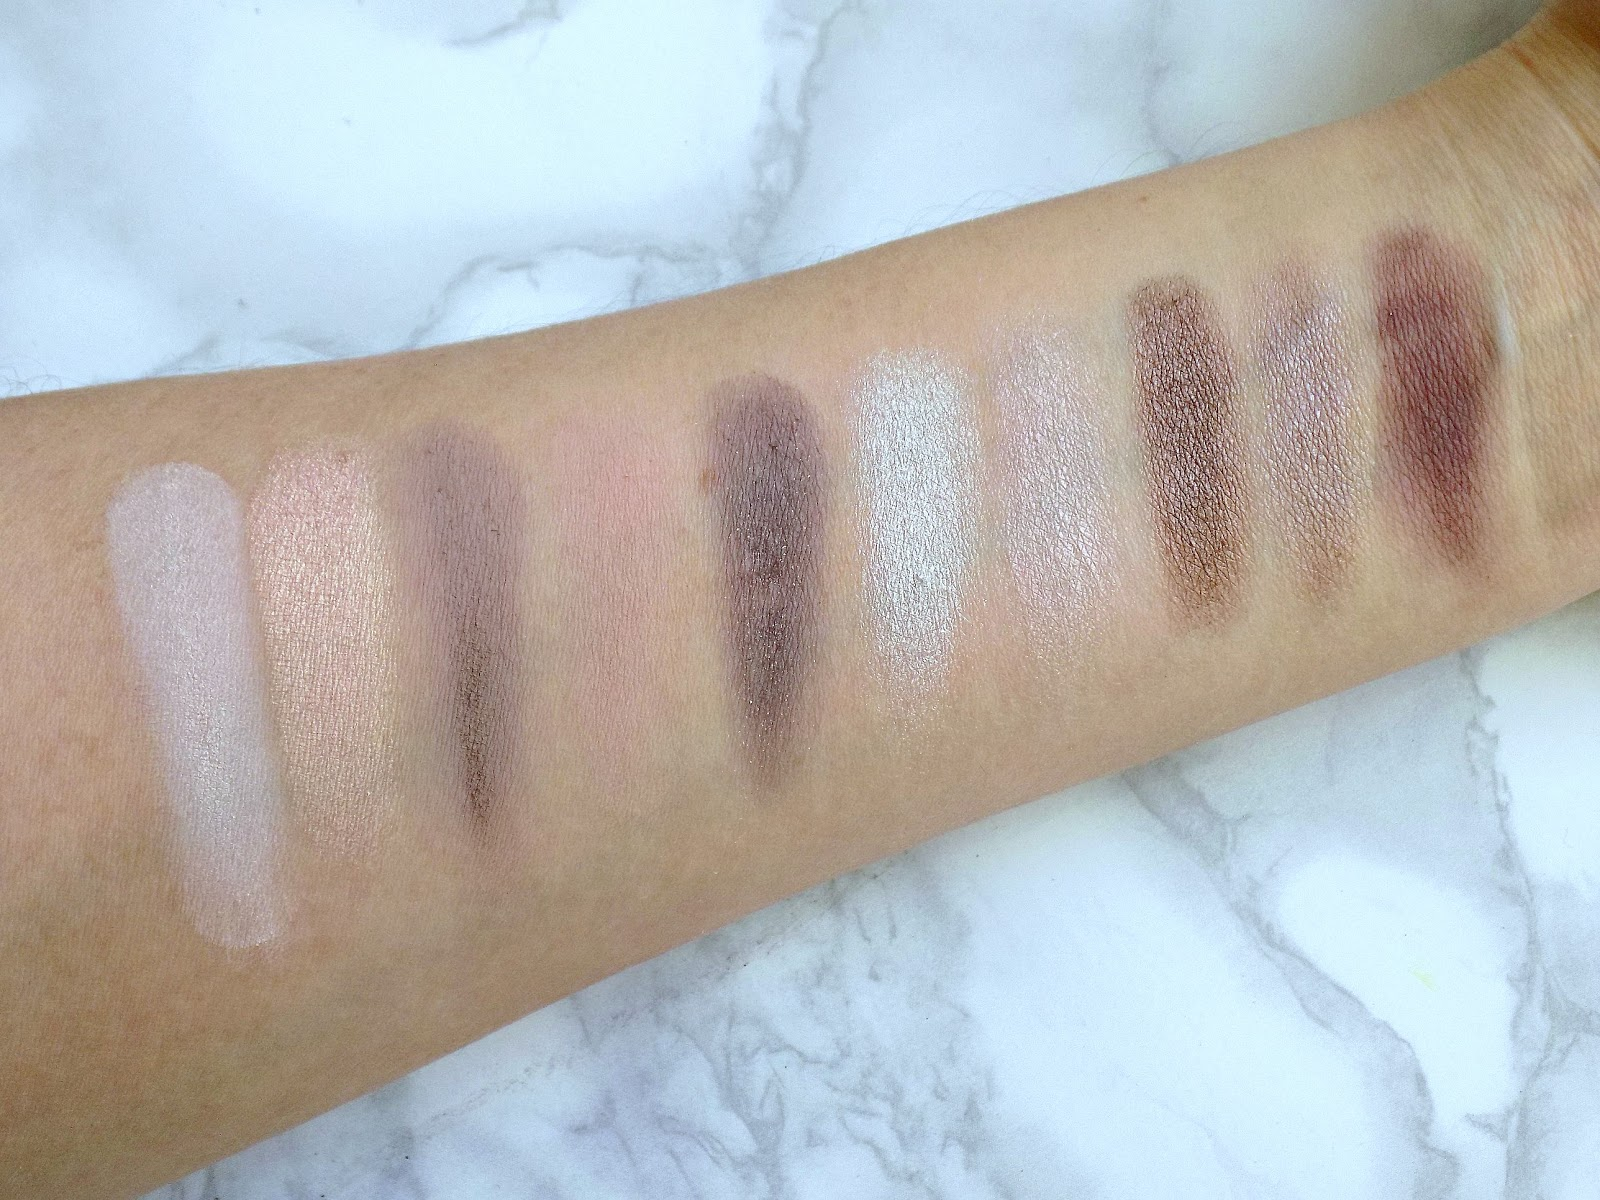 Zoeva En Taupe palette swatches